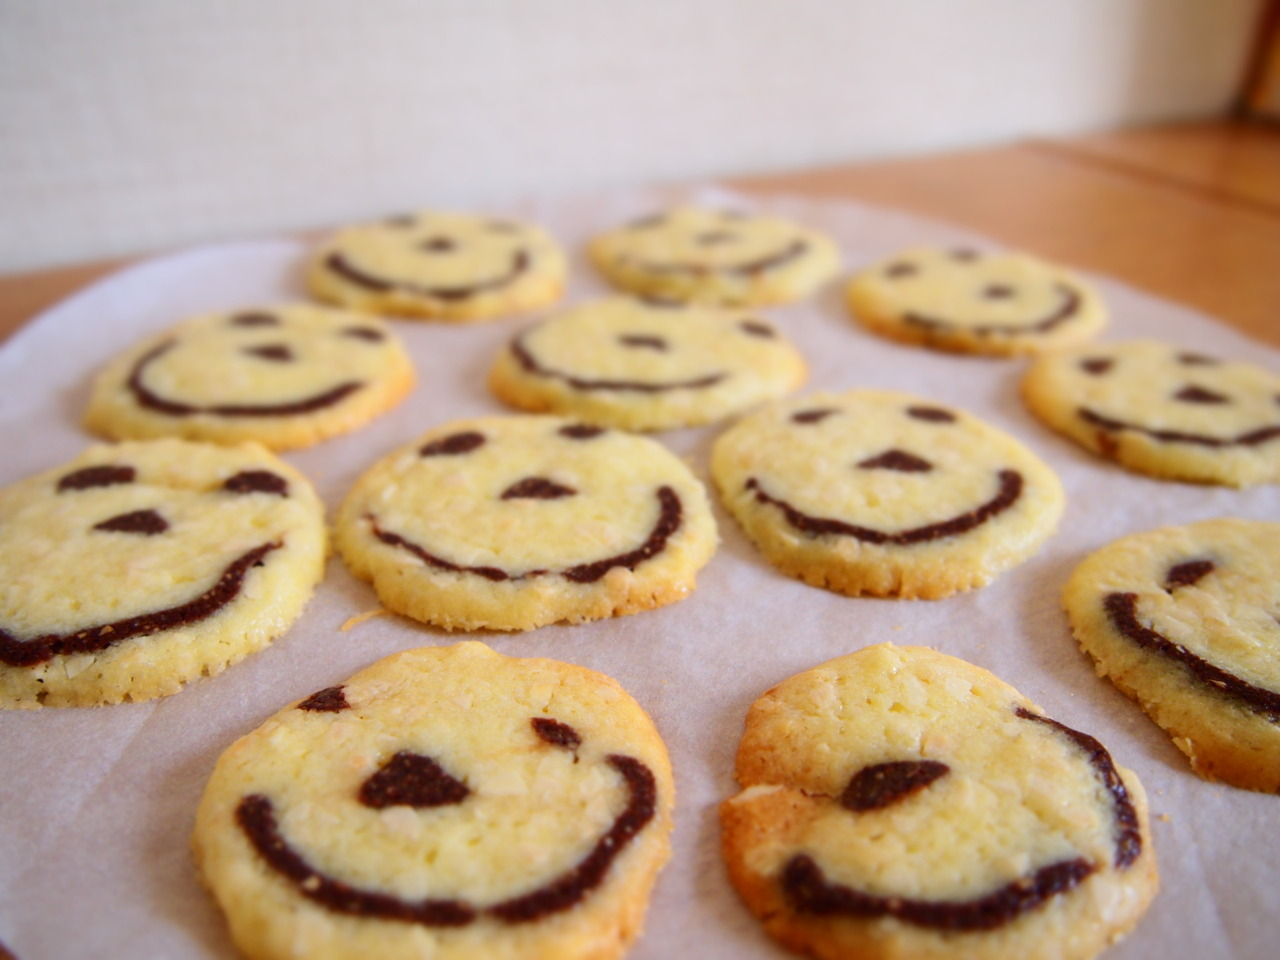 have some cookies and smile:D